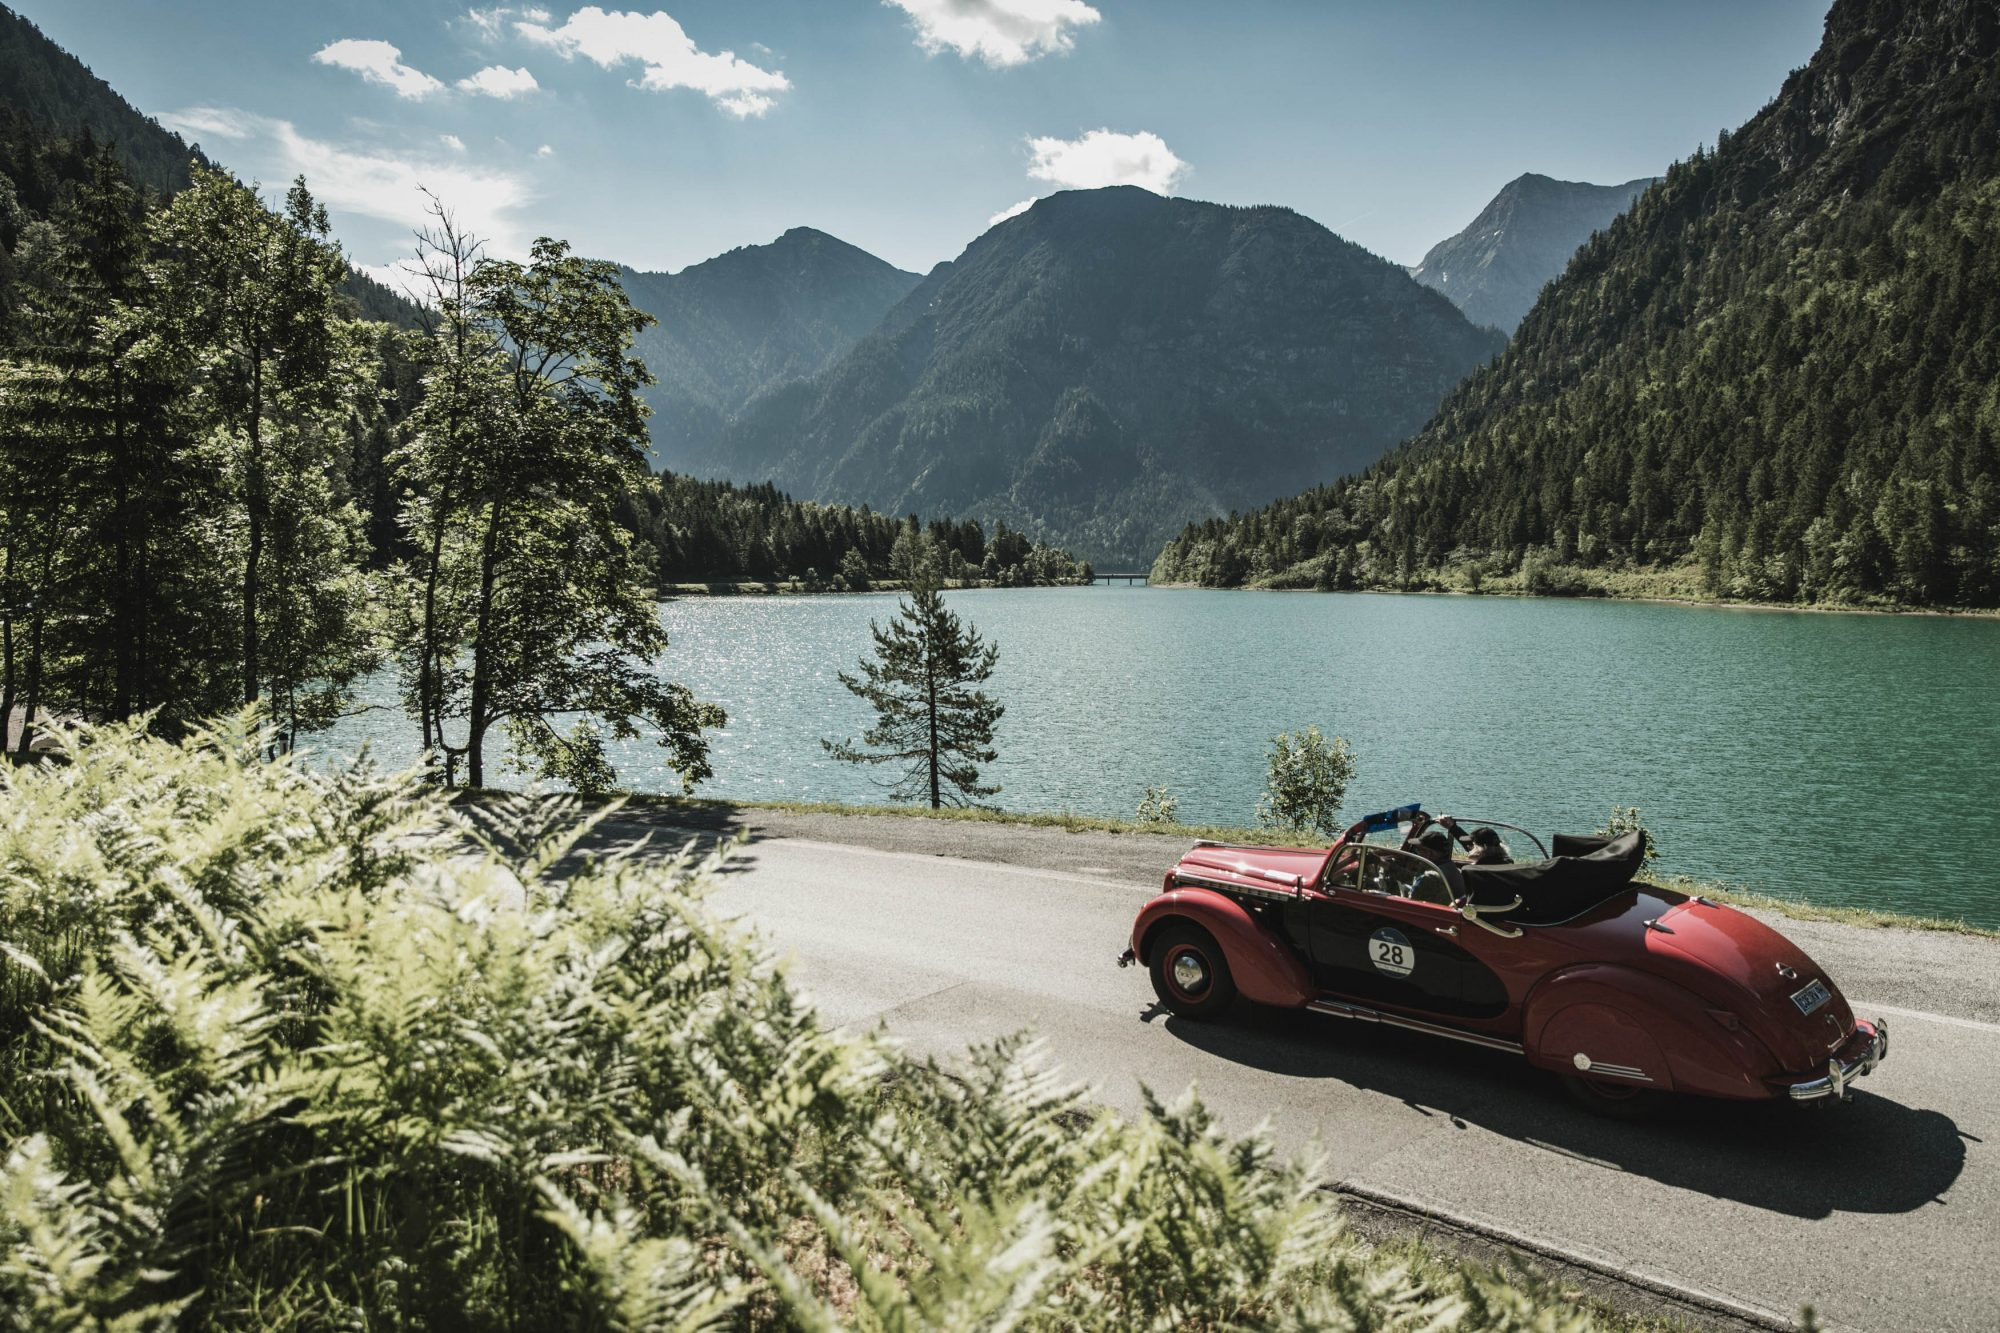 Classic Cars Rally Through The Mountains - Love The Mountains